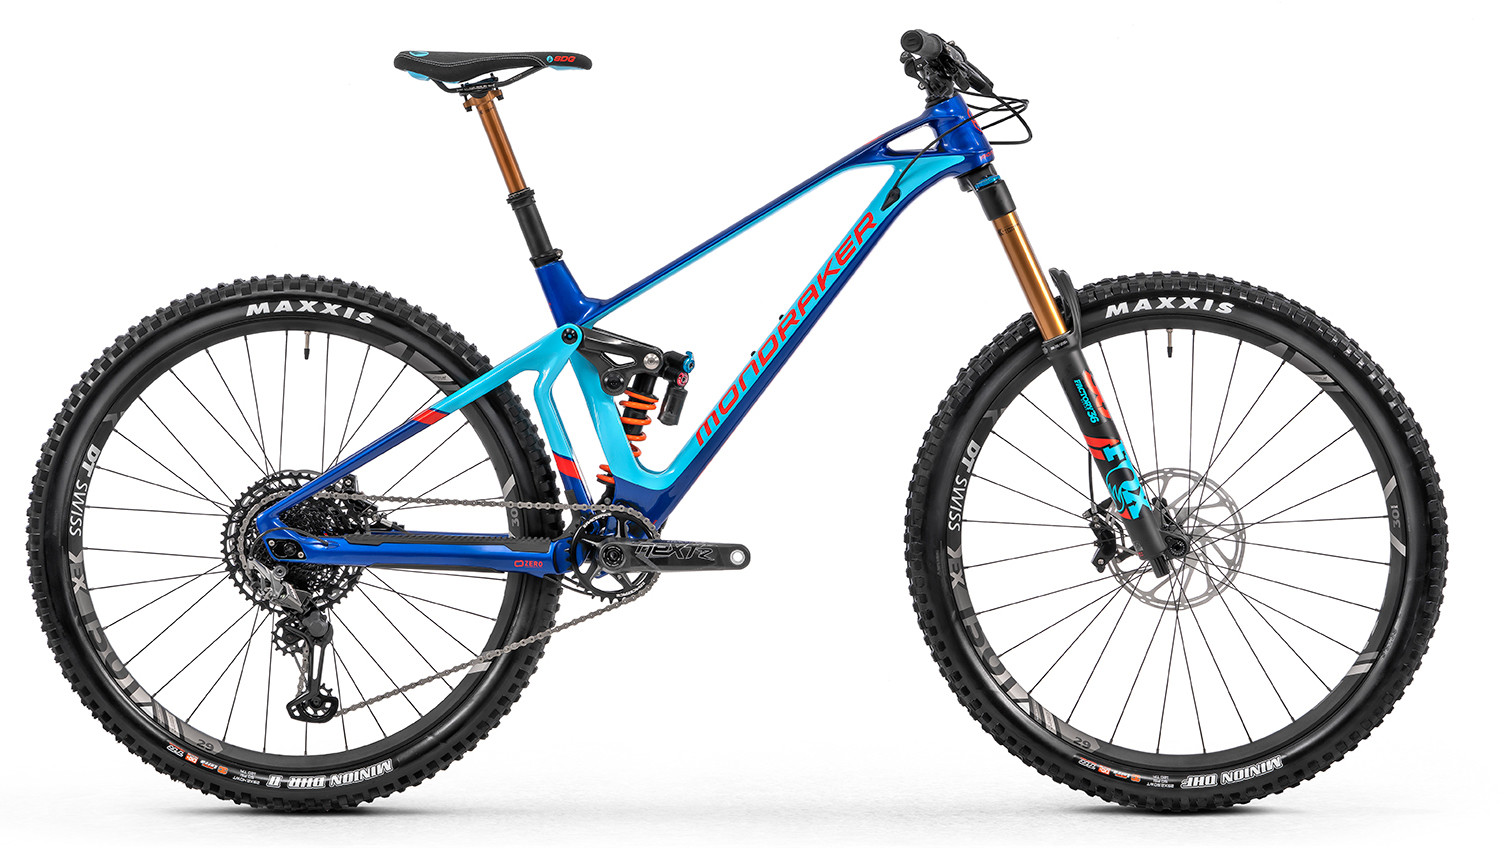 Mondraker Launches the New Super Foxy Carbon 29